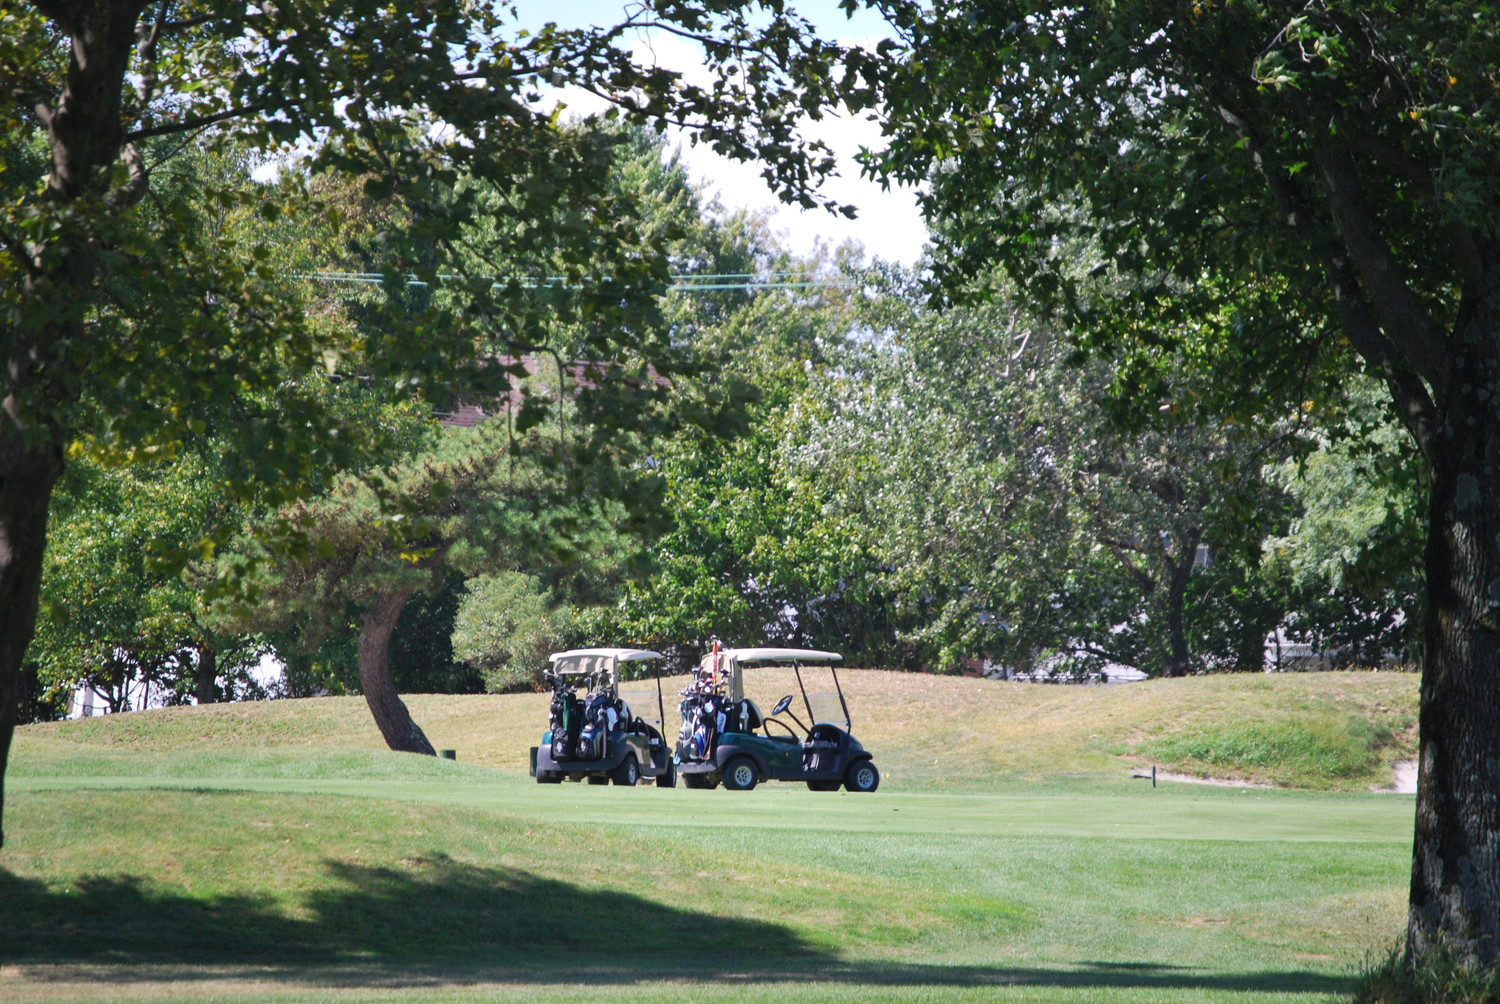 The Woodmere Club's open space could be gone from the Five Towns landscape in less than five years.